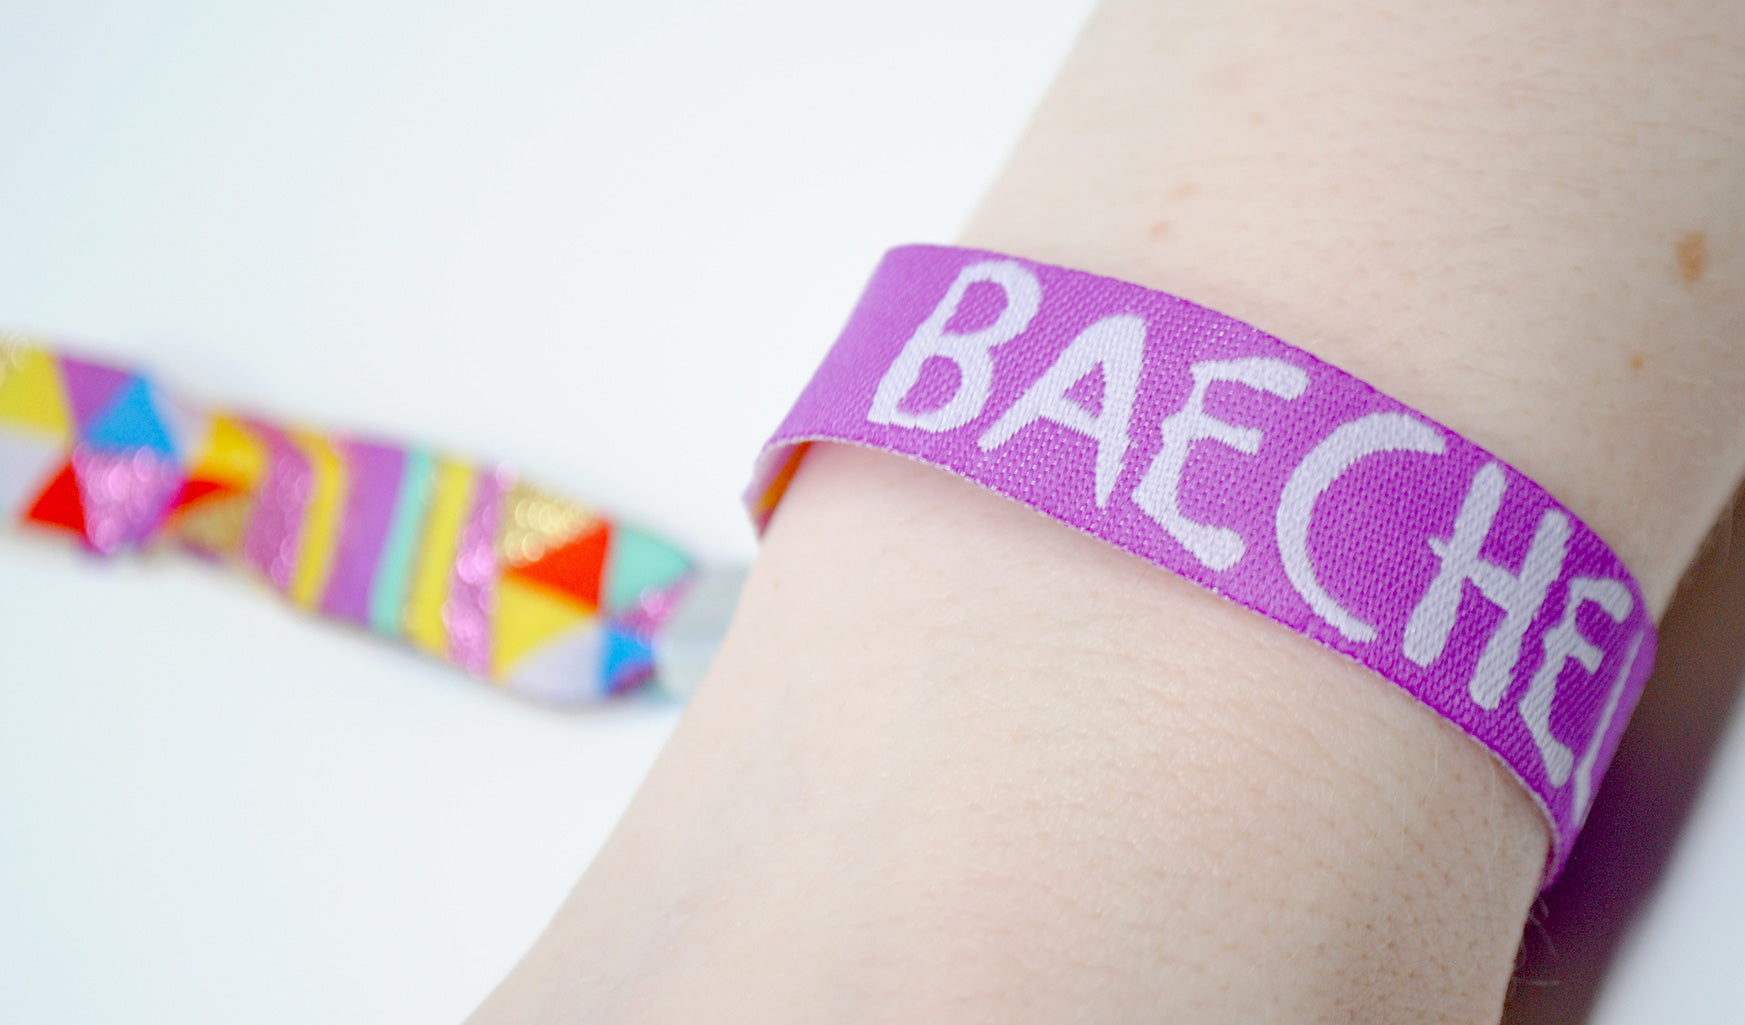 baechella festival wristband party favors